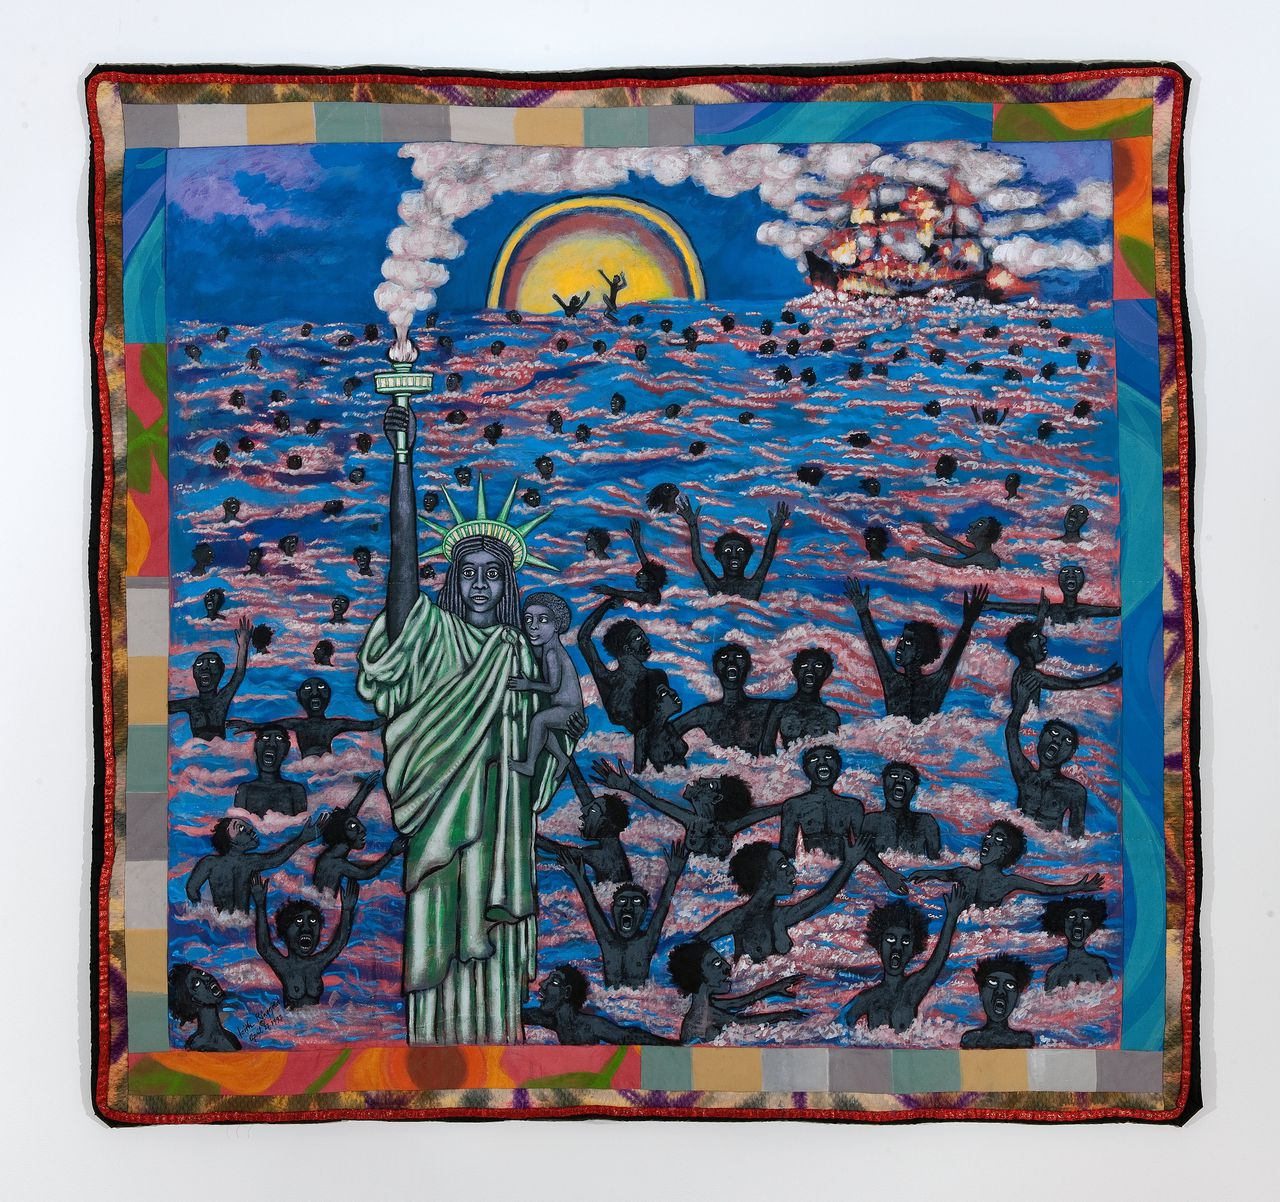 Faith Ringgold. Links: American Collection #1: We Came to America (1997)